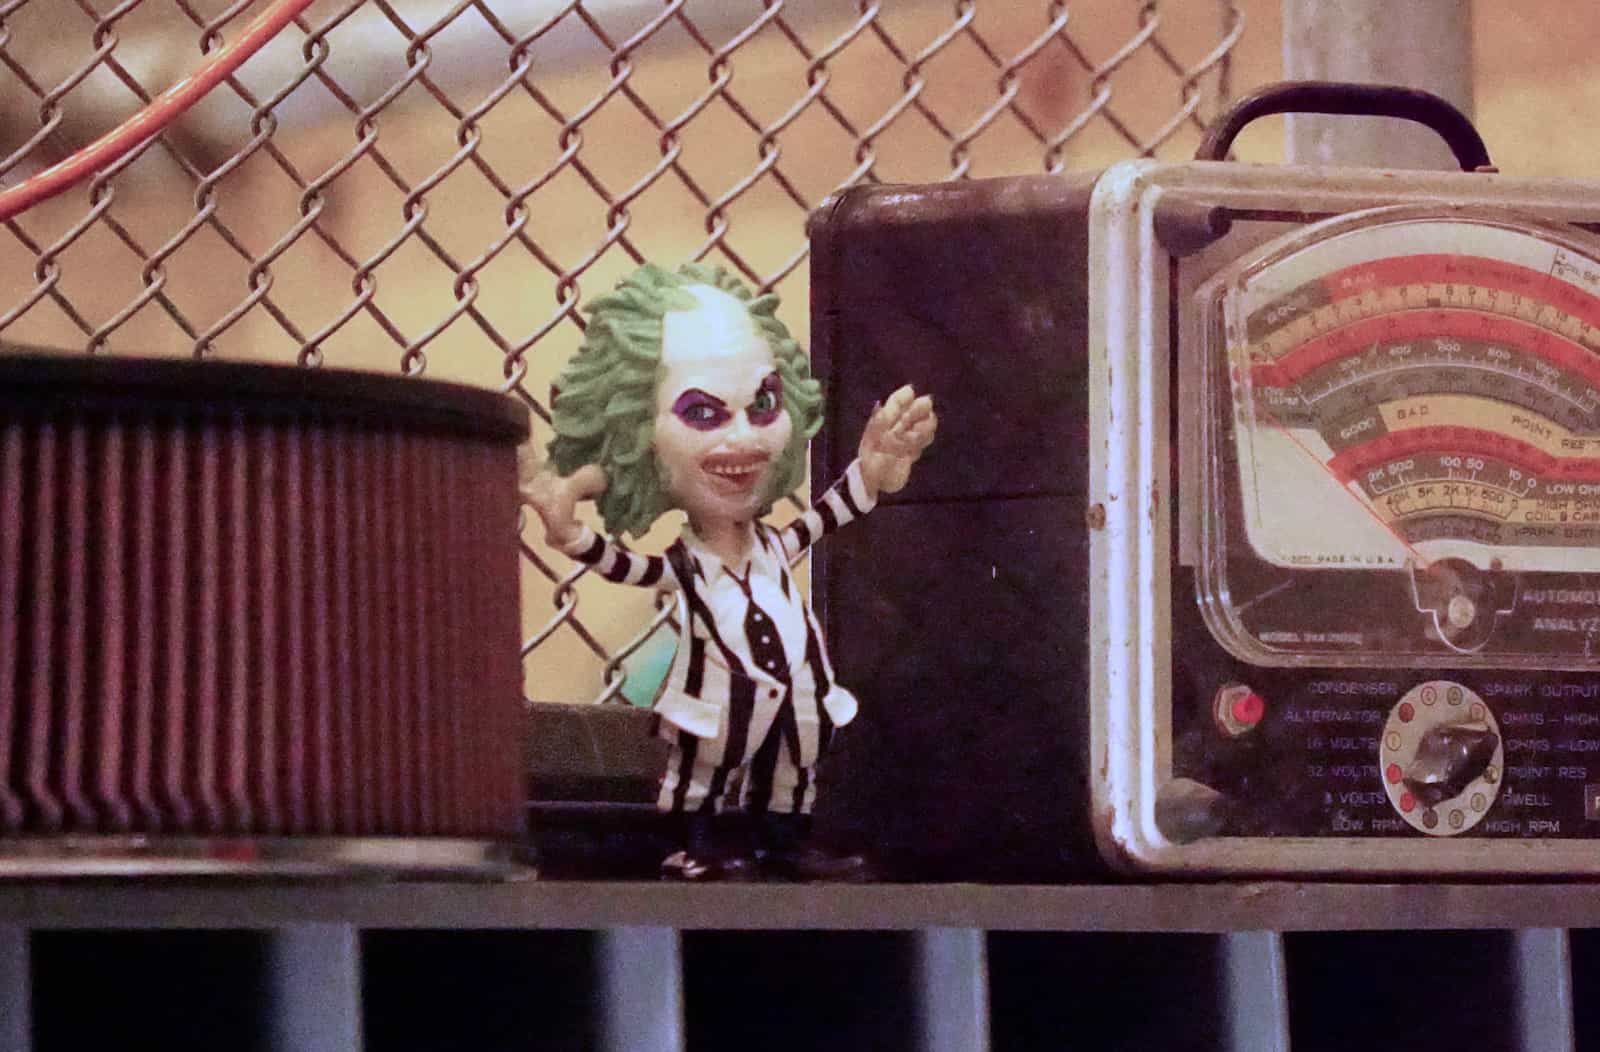 beetlejuice doll